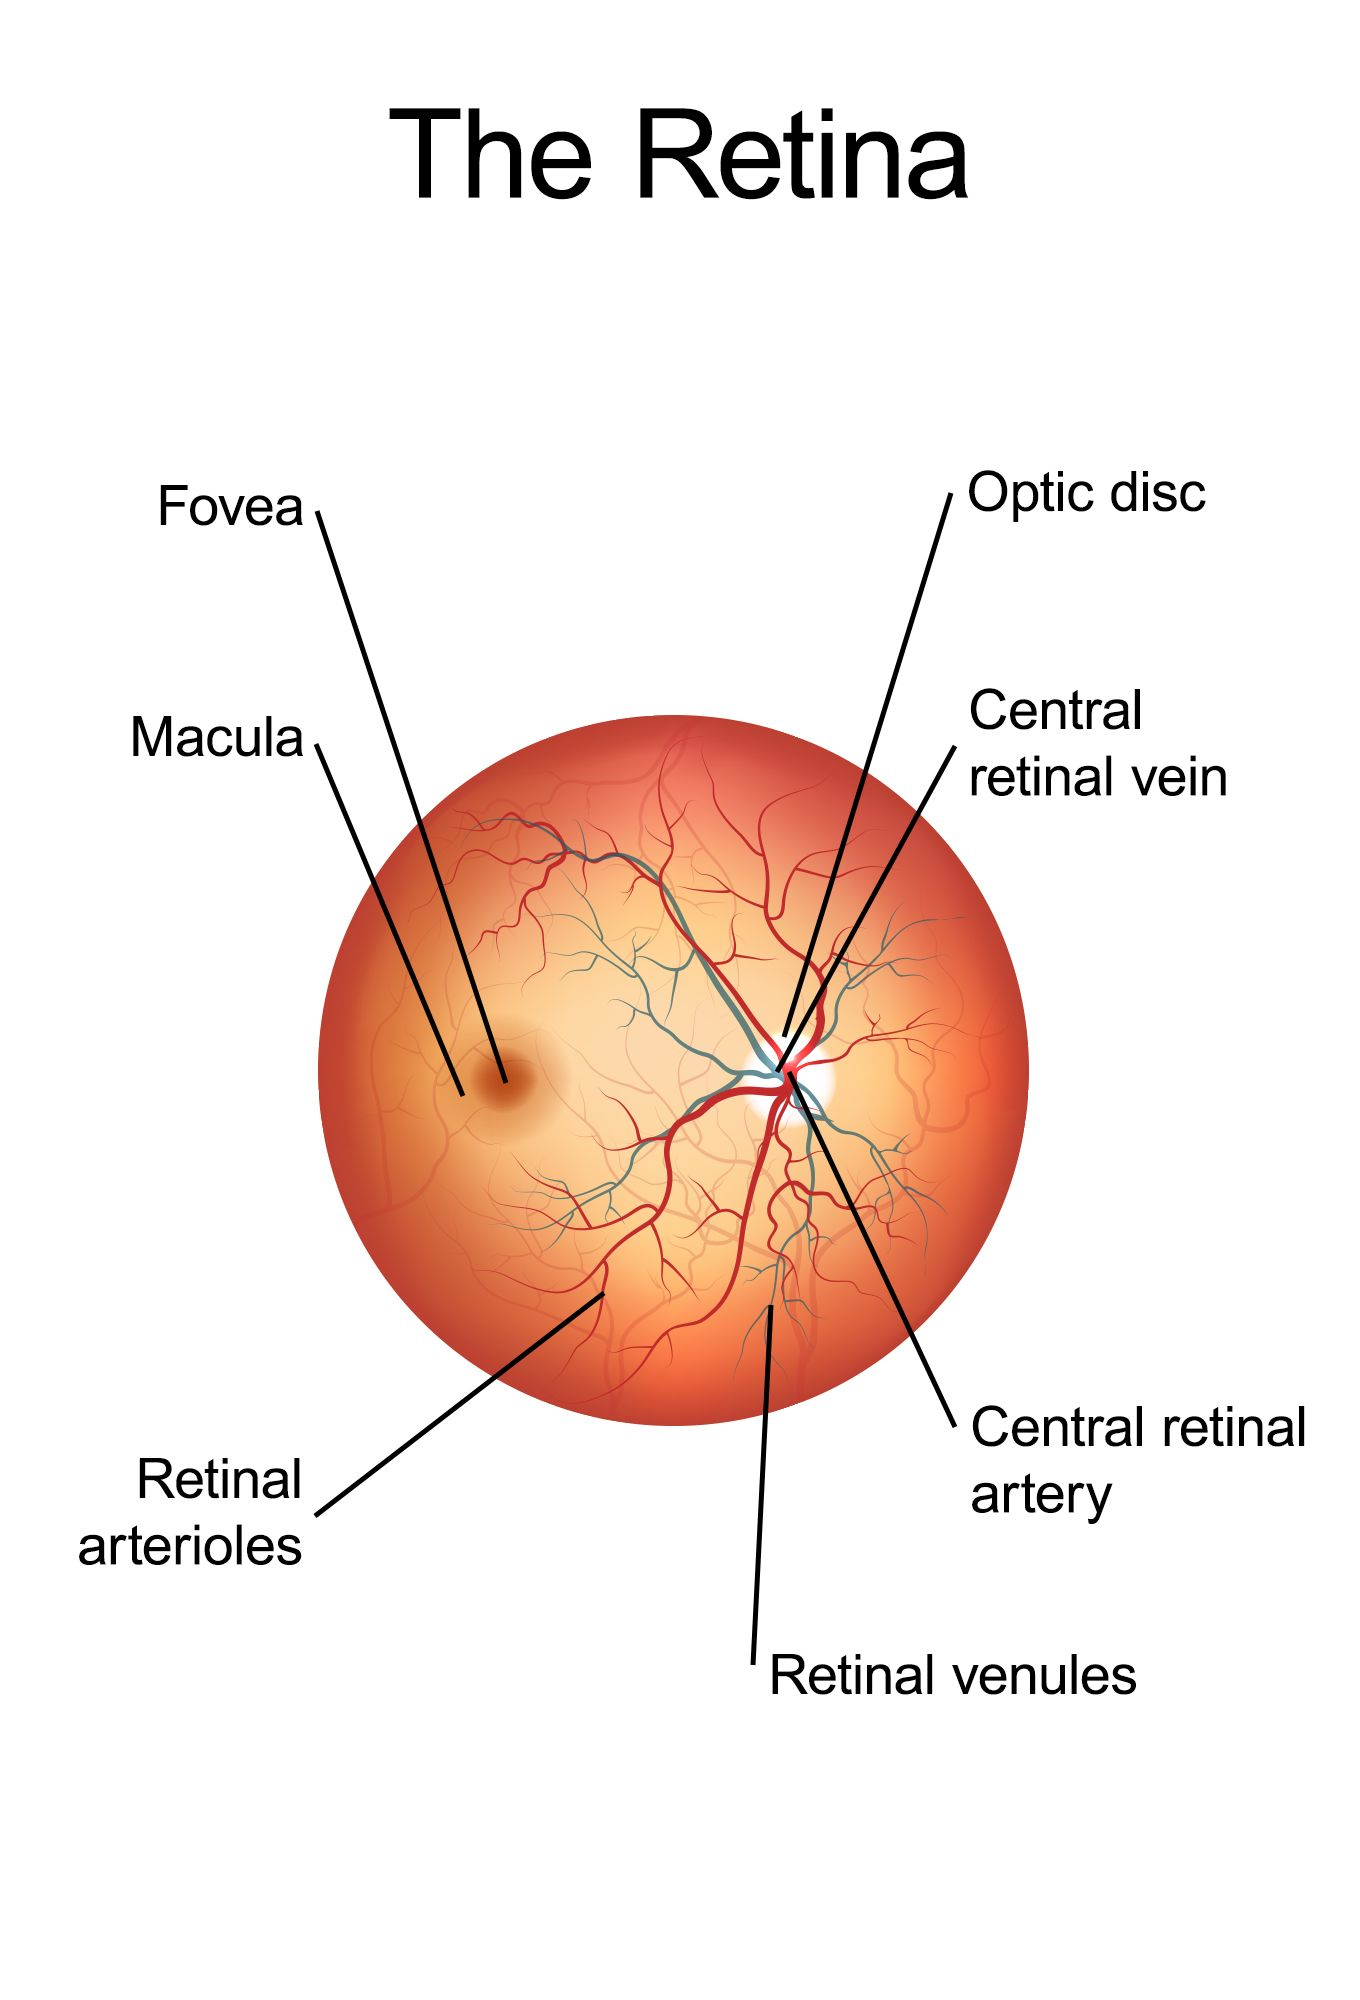 A diagram of the retina